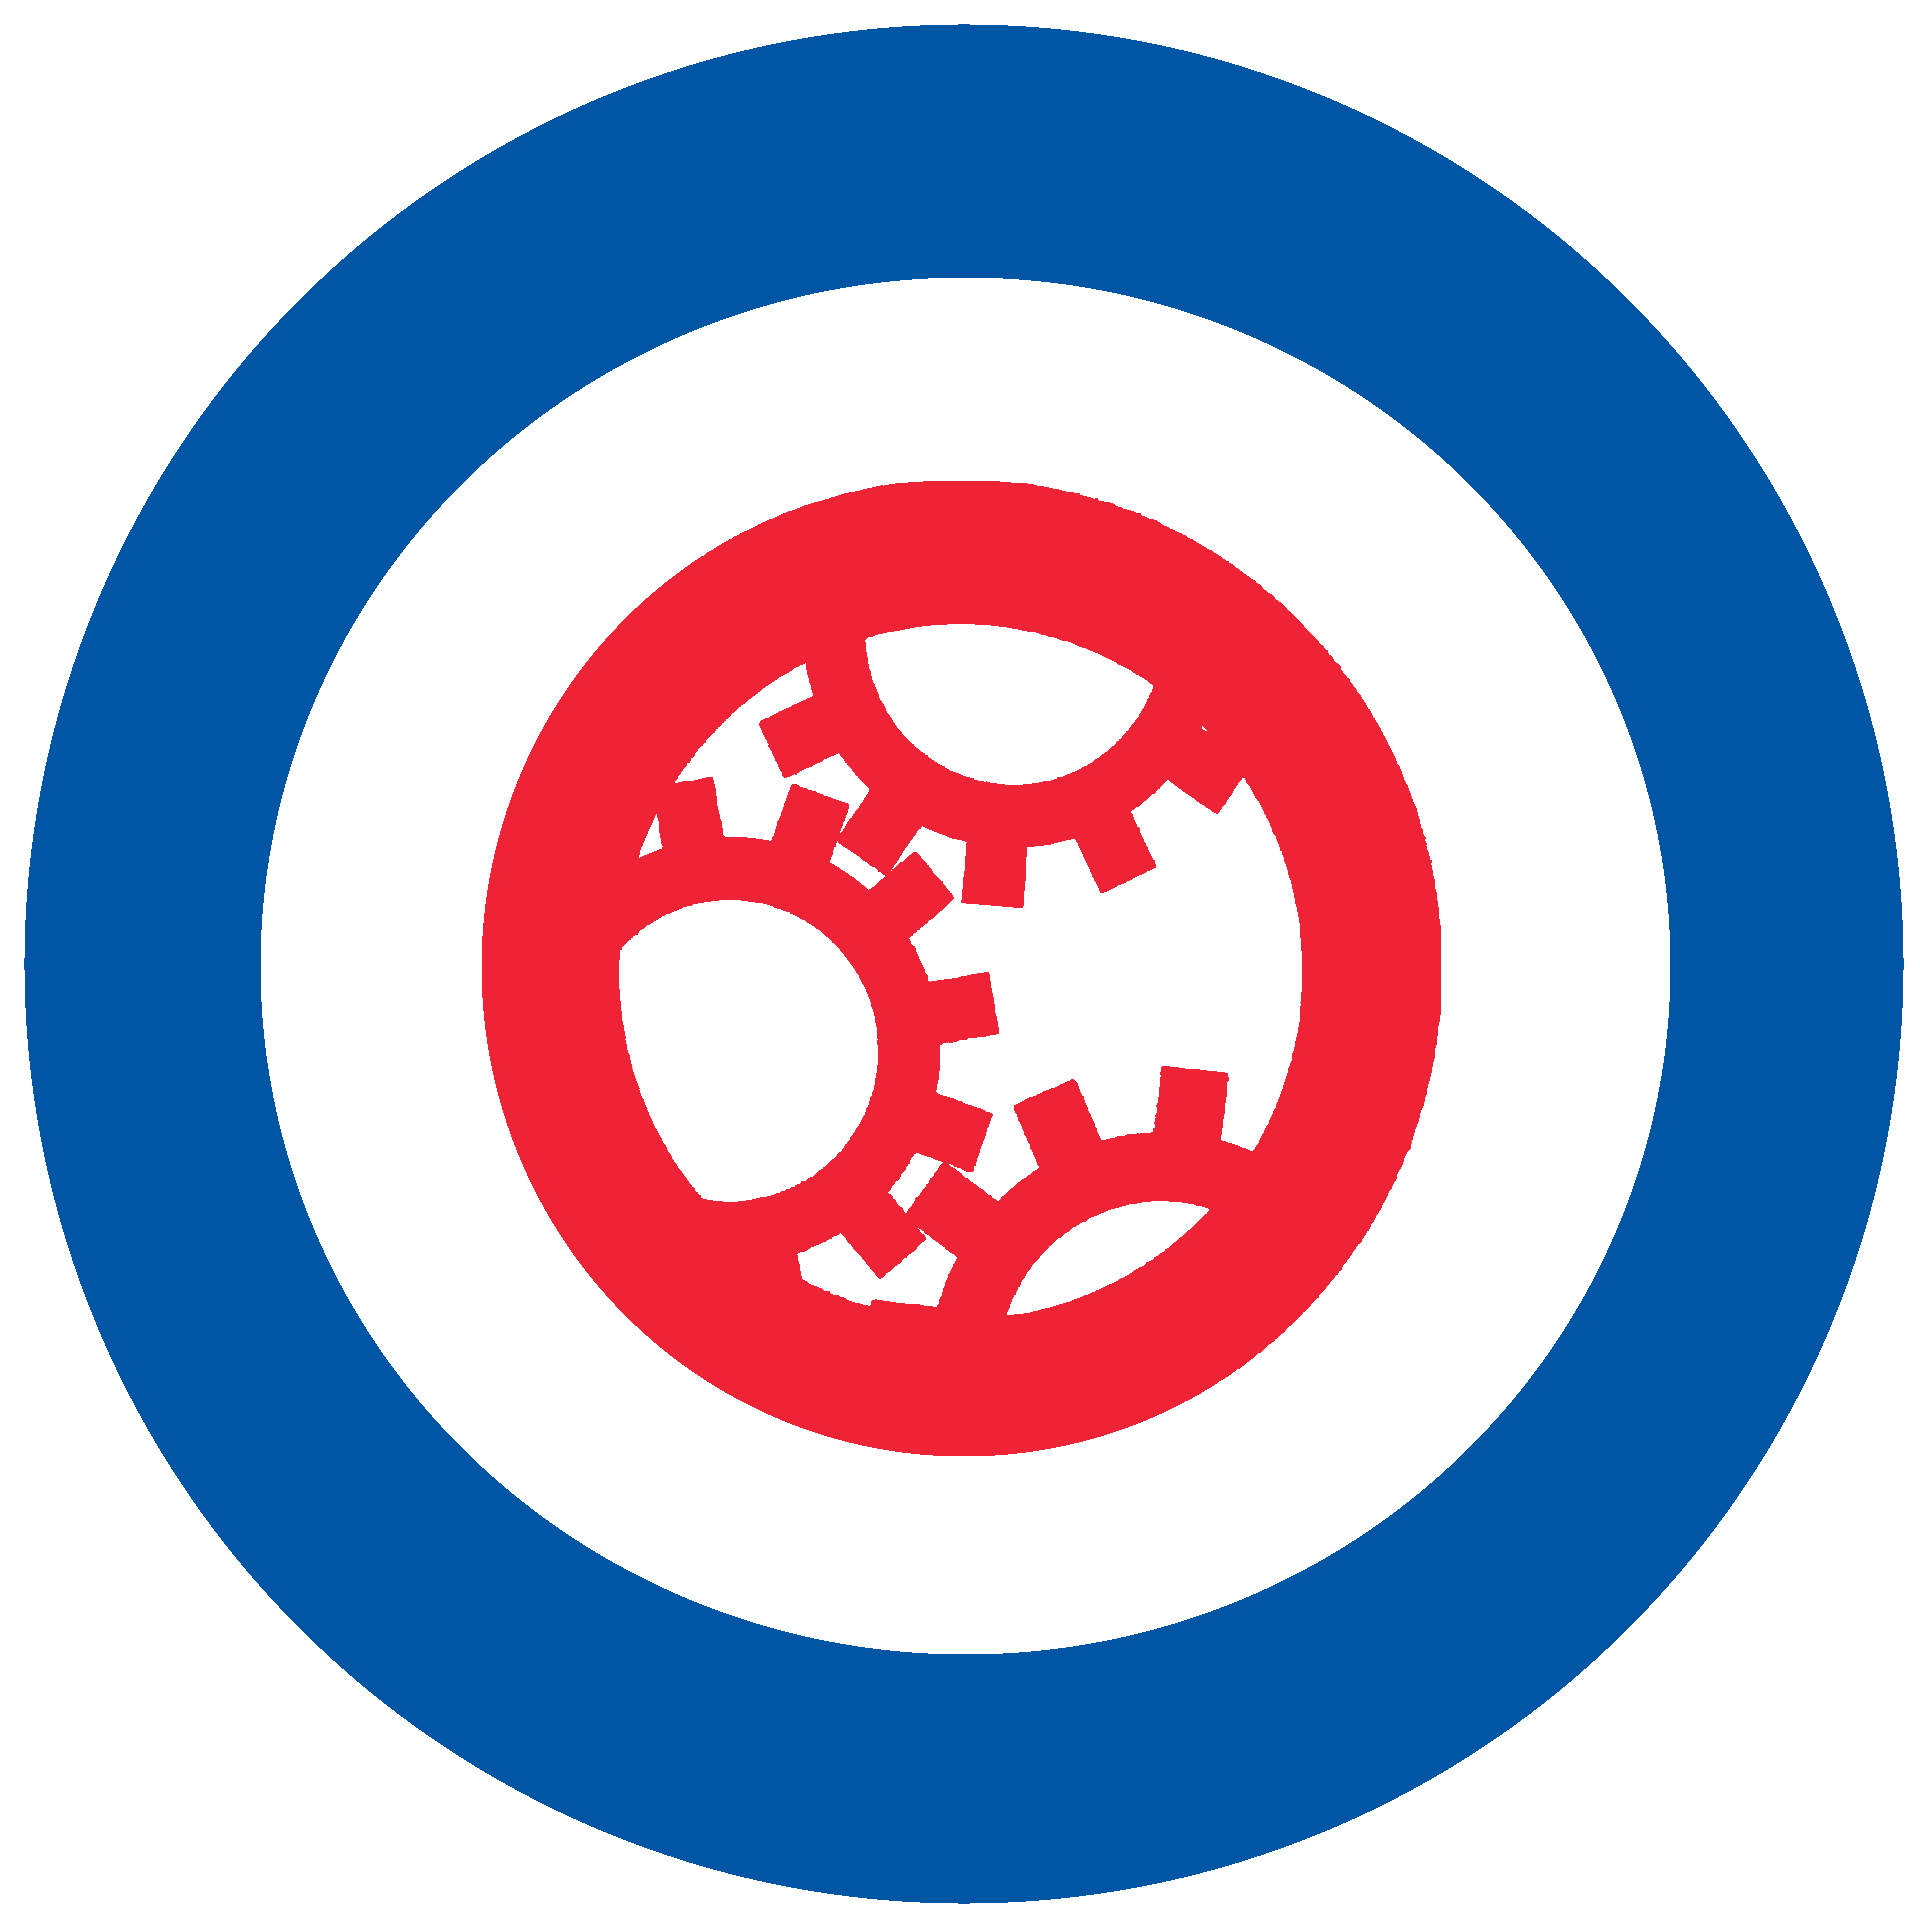 https://www.frenchautomation.com/img/logo_fa.png